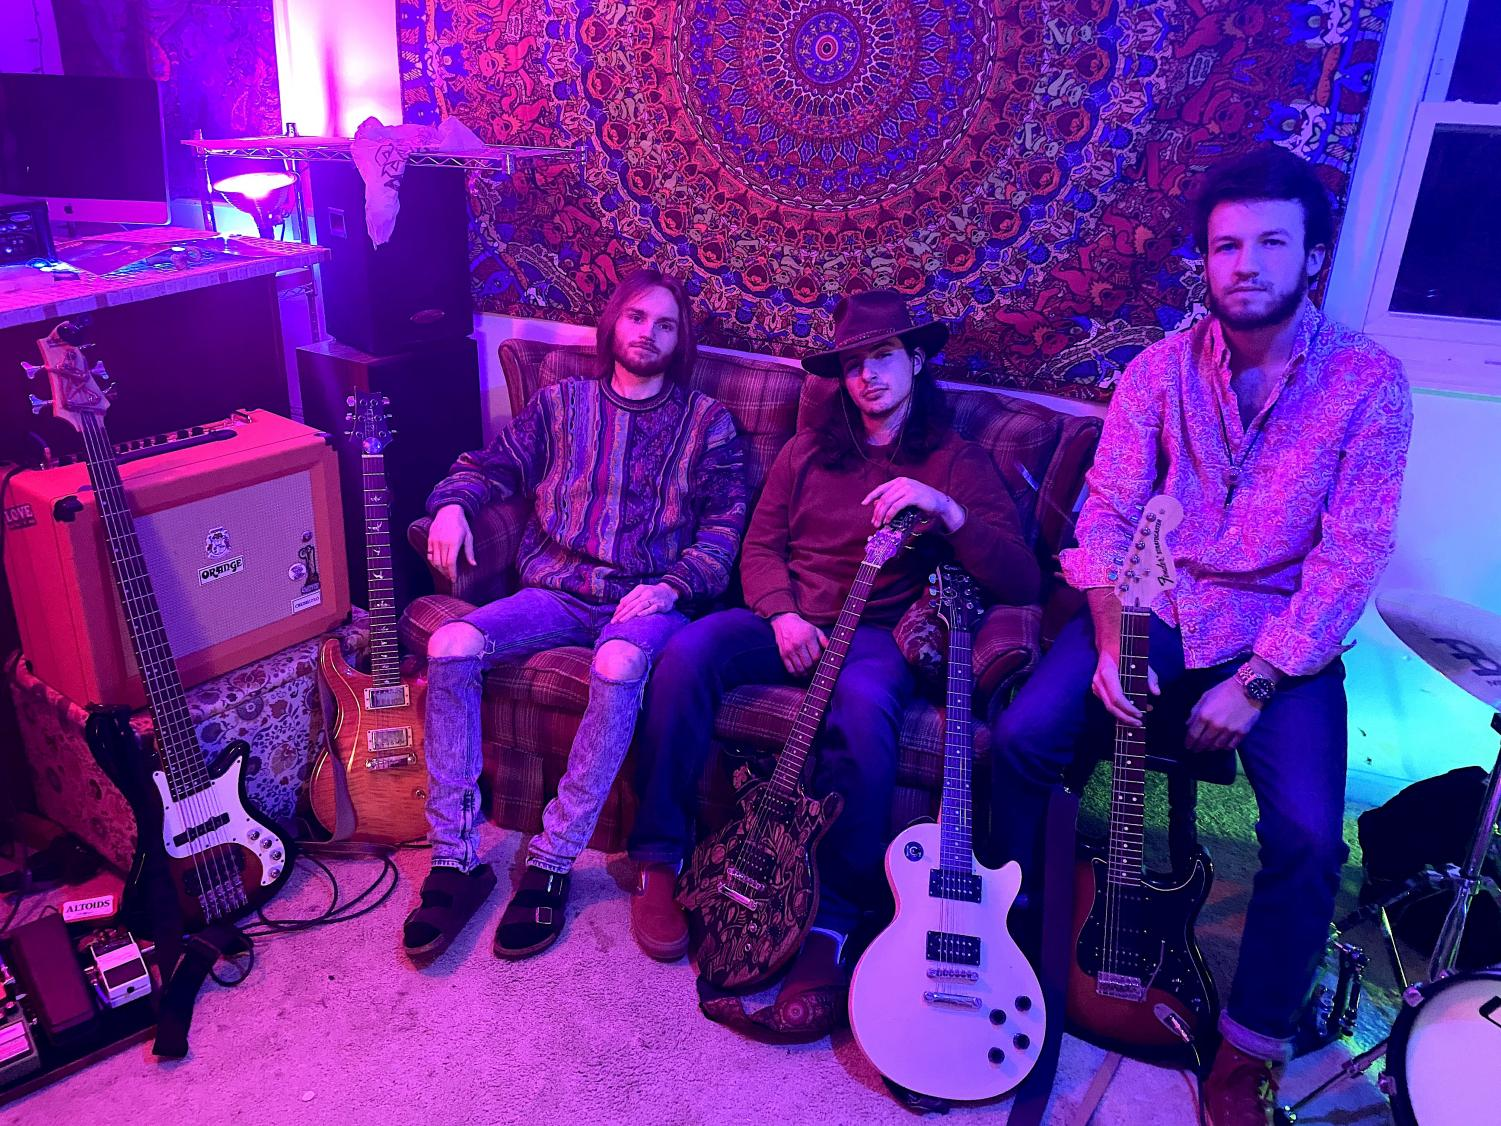 Dan Chelcun, JD Nickel, and Justin Rosario are Loosey, a student band who performed this past weekend at the Greenhouse in Boone. The venue doubles as the band's house, and is an upcoming home venue in the area.